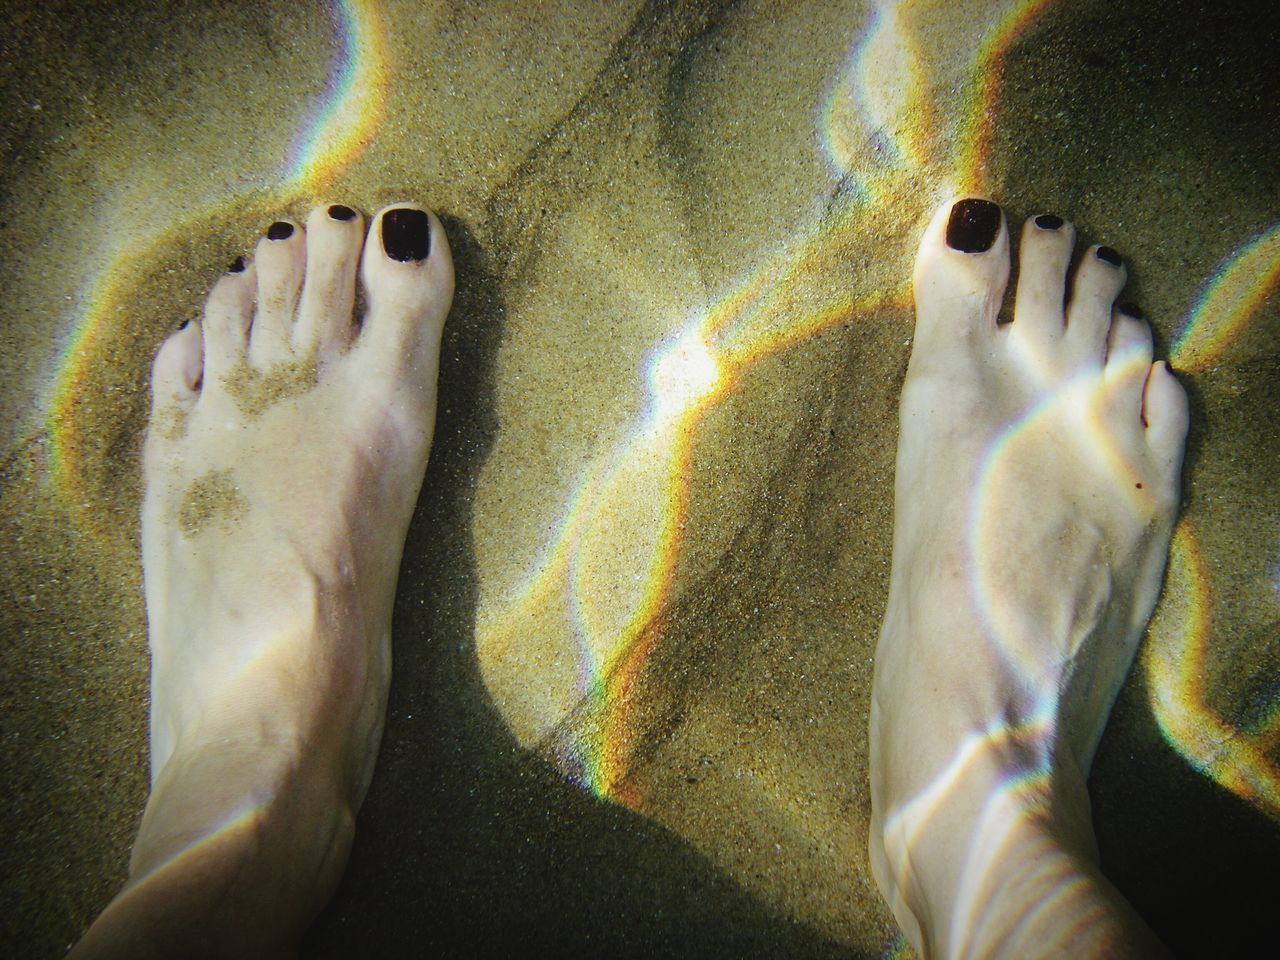 My feet under the sea glup💦Two Is Better Than One Outdoors Weekend Activities Sea_collection Vscocam Streemzoofamily Aquatic LifeAMPt_community Check This Out Capture The Moment Feet Enjoying Life